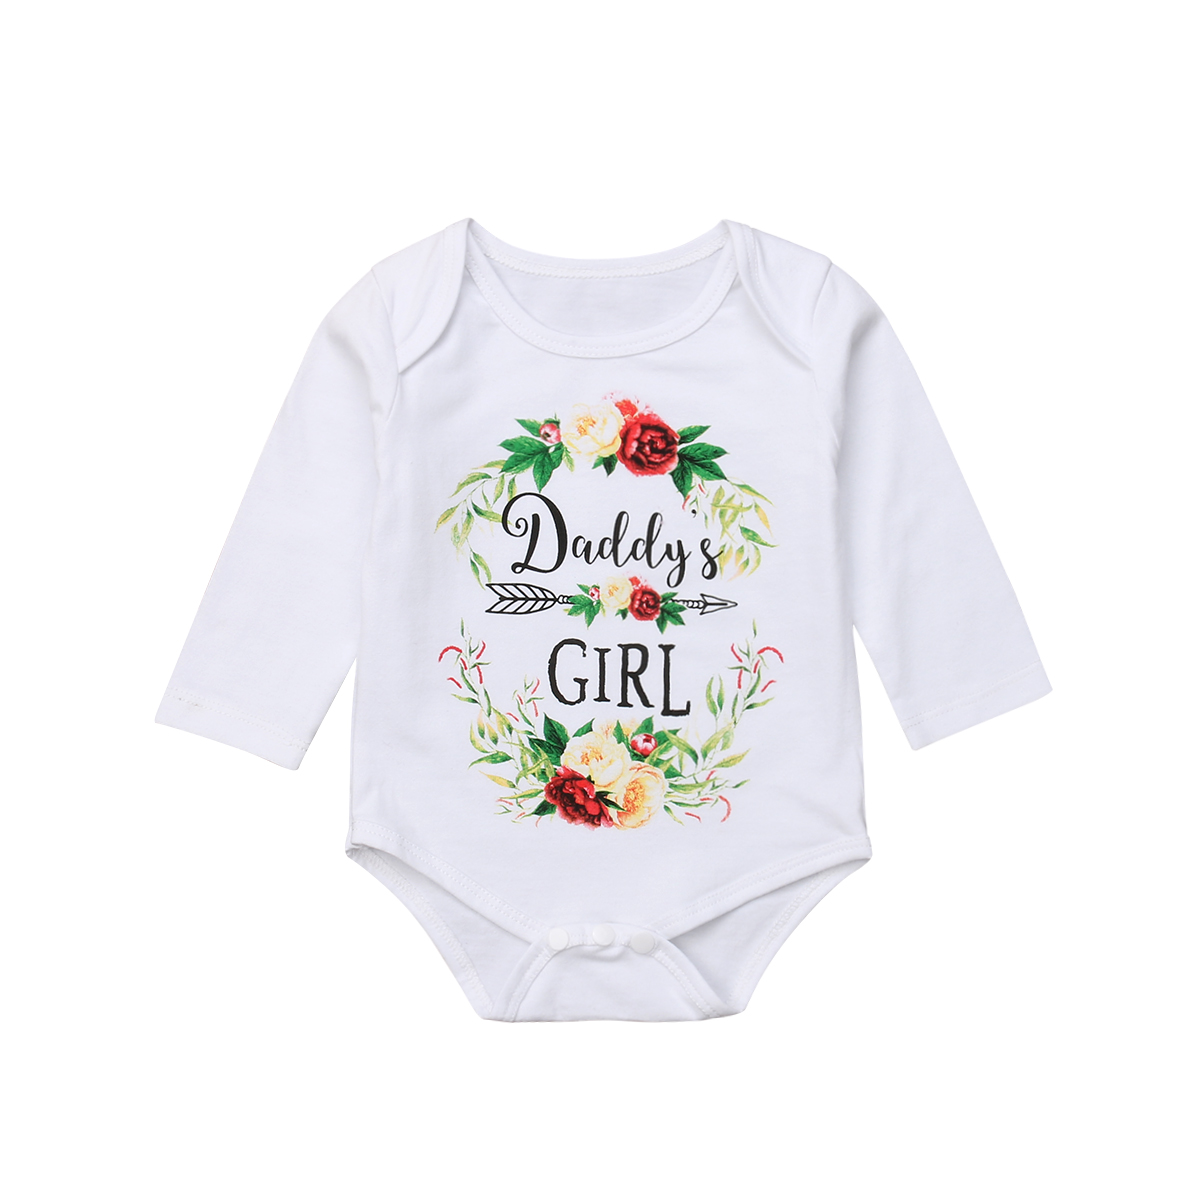 Cute Newborn Baby Girl Long Sleeve Floral Cotton Baby   Romper   Jumpsuit Outfits Baby Clothes 0-24M